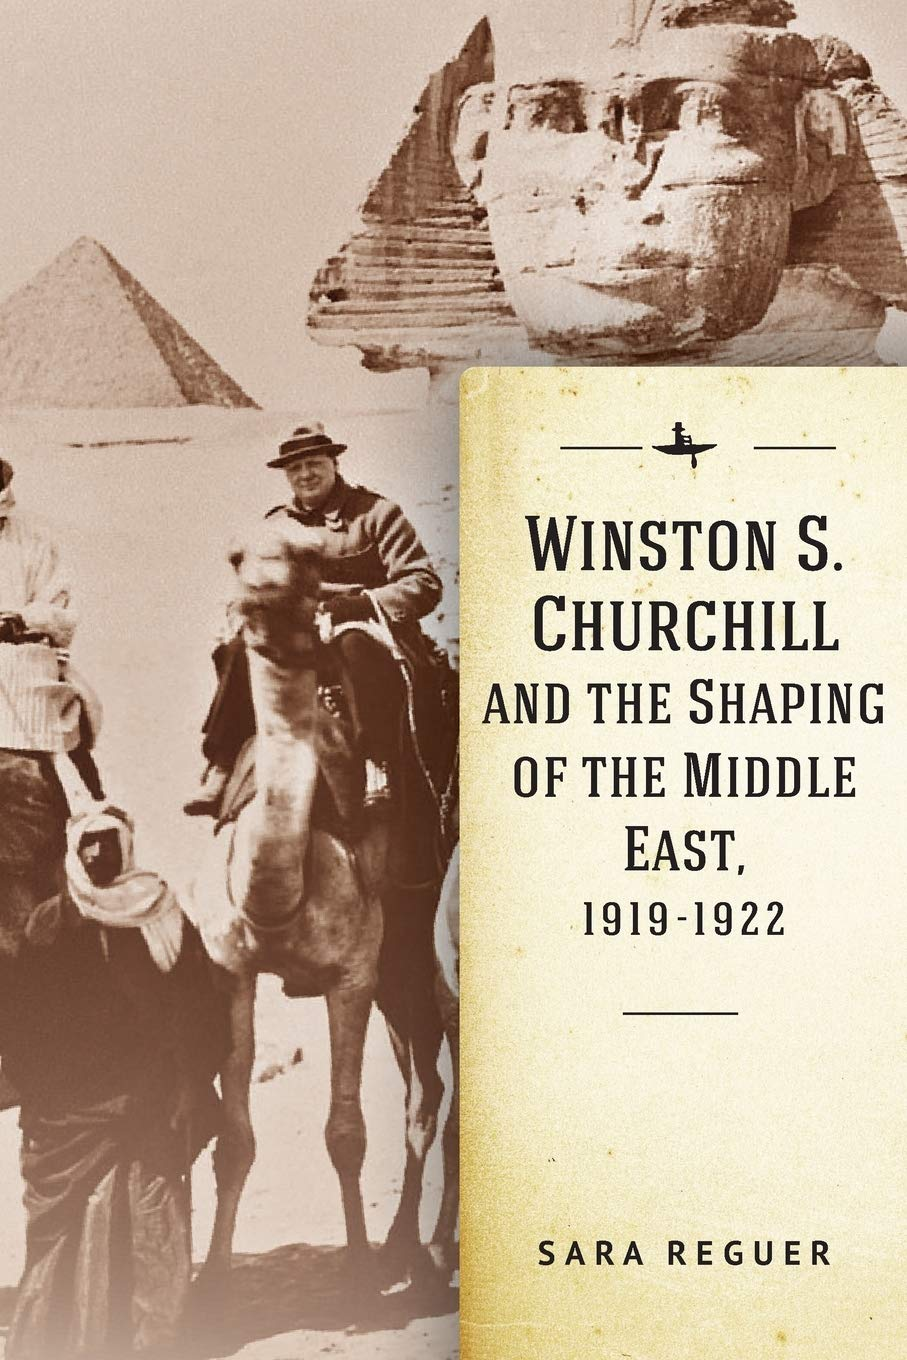 cover of Sara Reguer	Winston S. Churchill and the Shaping of the Middle East, 1919-1922. Academic Studies Press, 2020.	DA566.9.C5 R48 2020